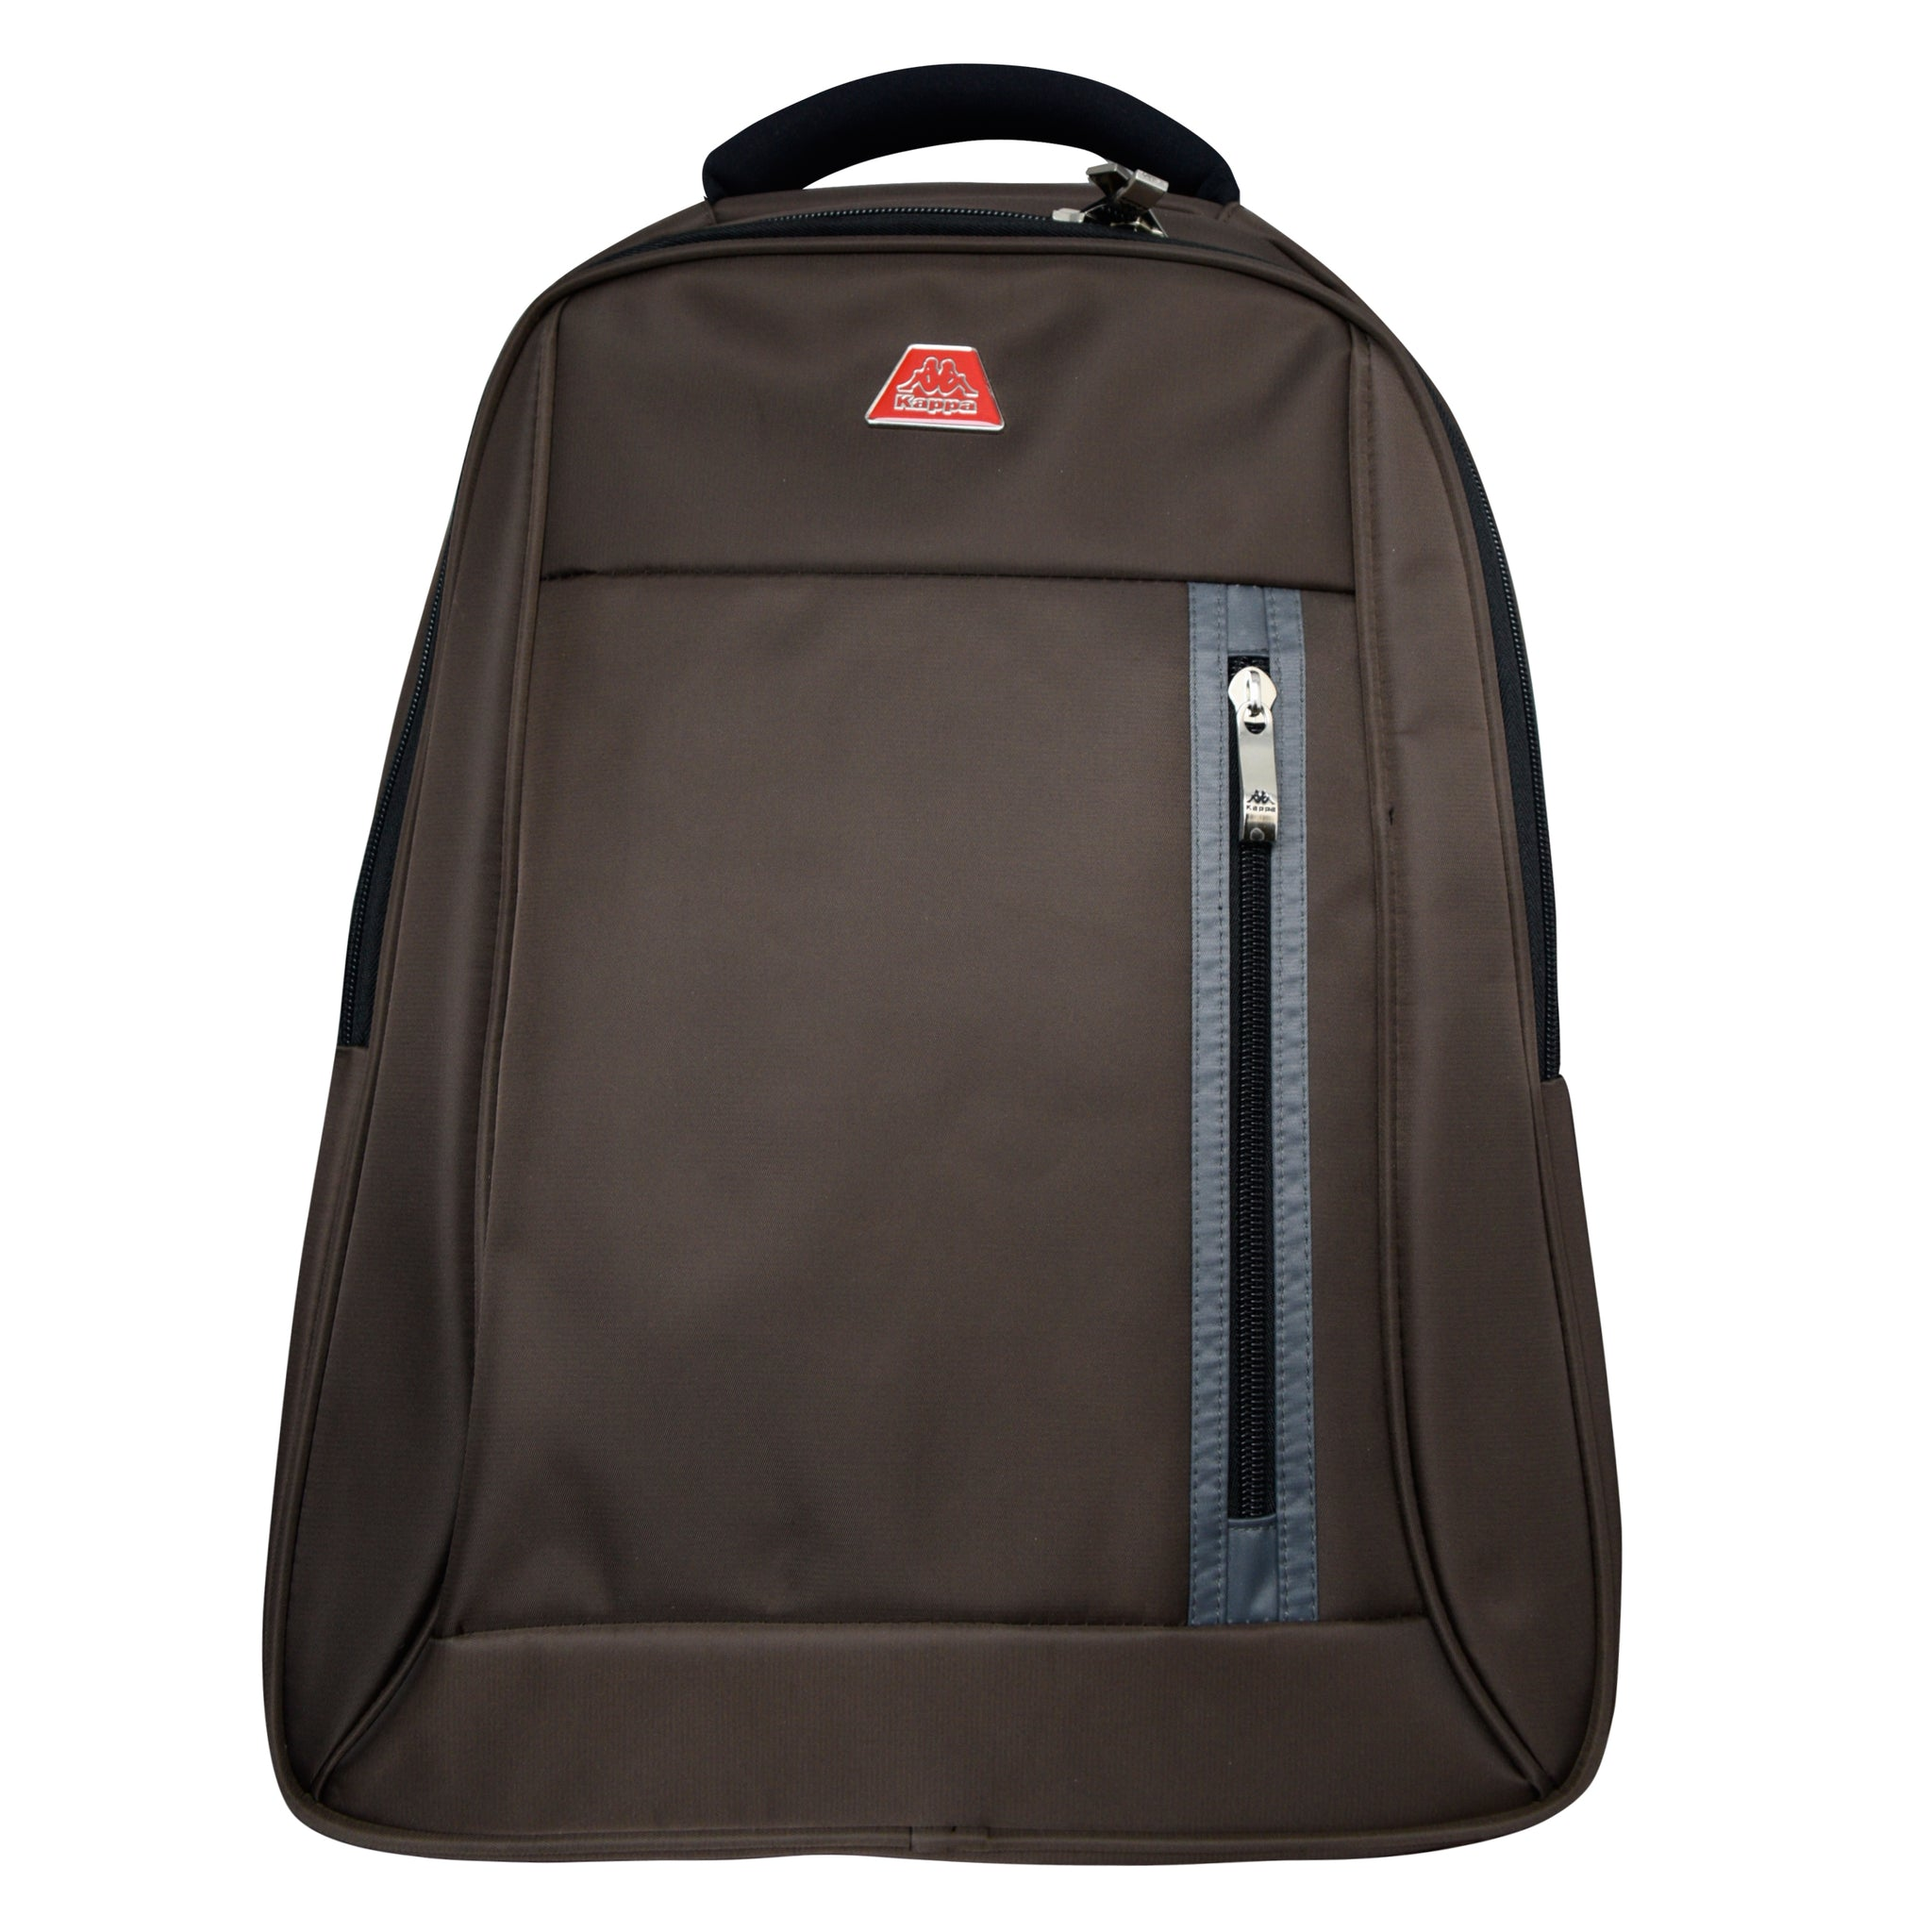 BackPack Lifestyle PLG004-1